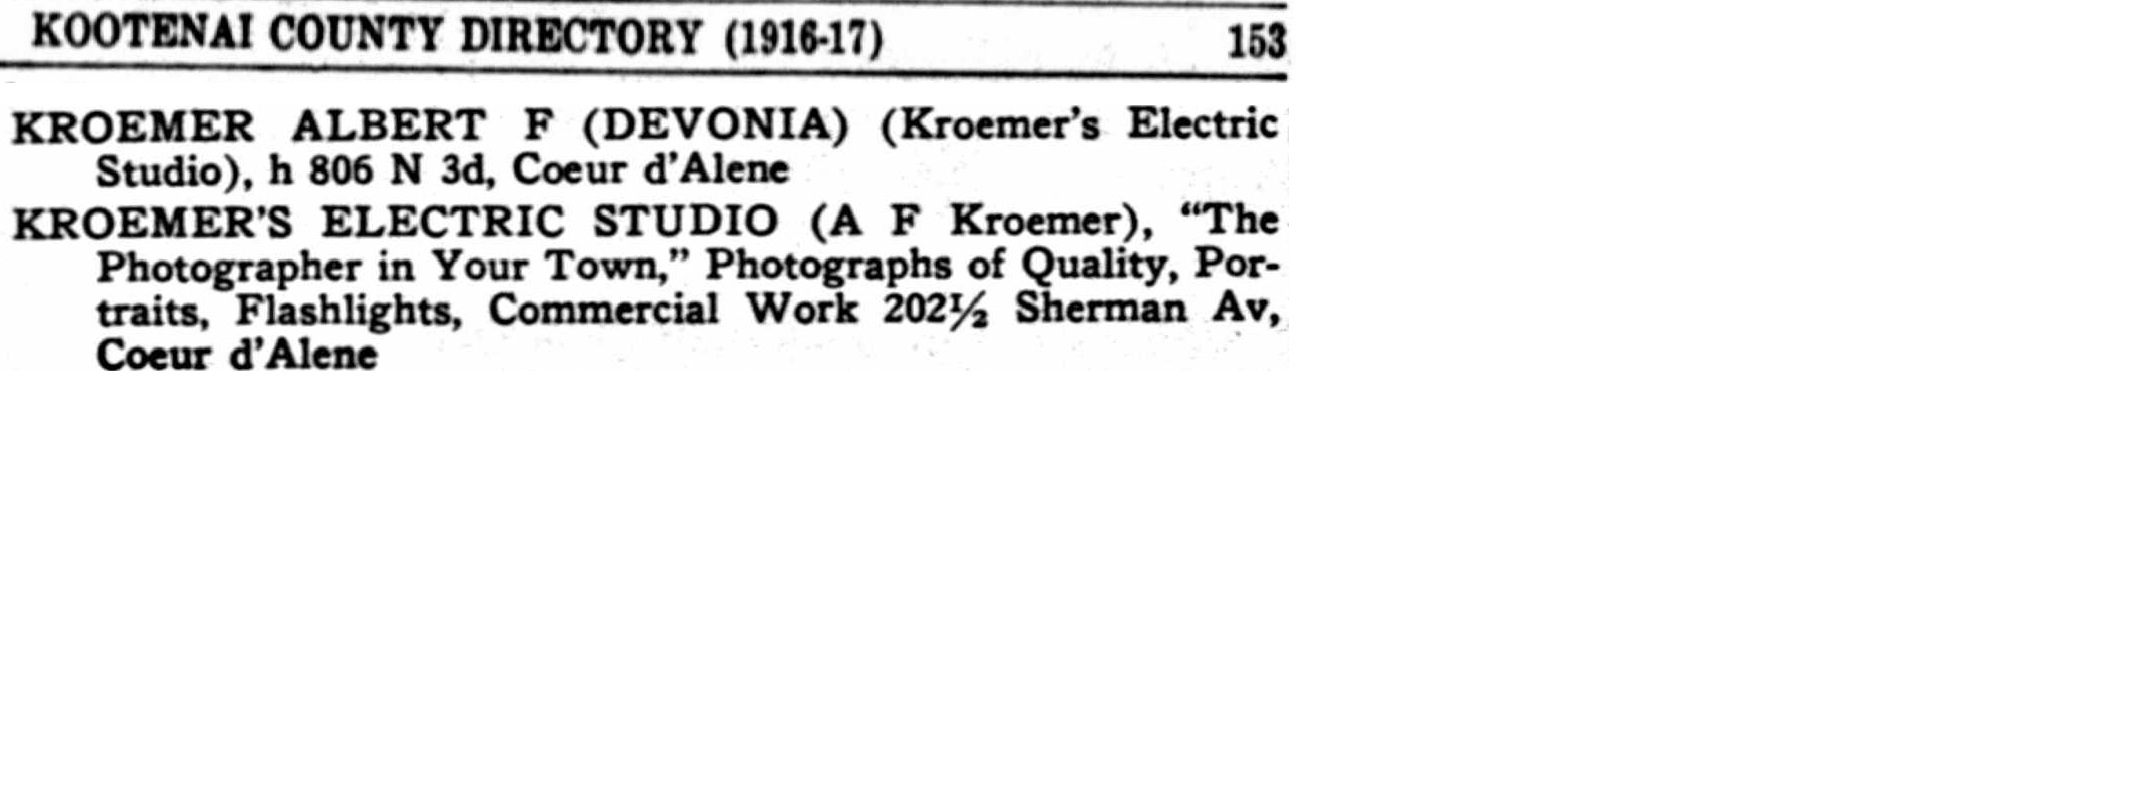 1916 Kootenai County City Directory